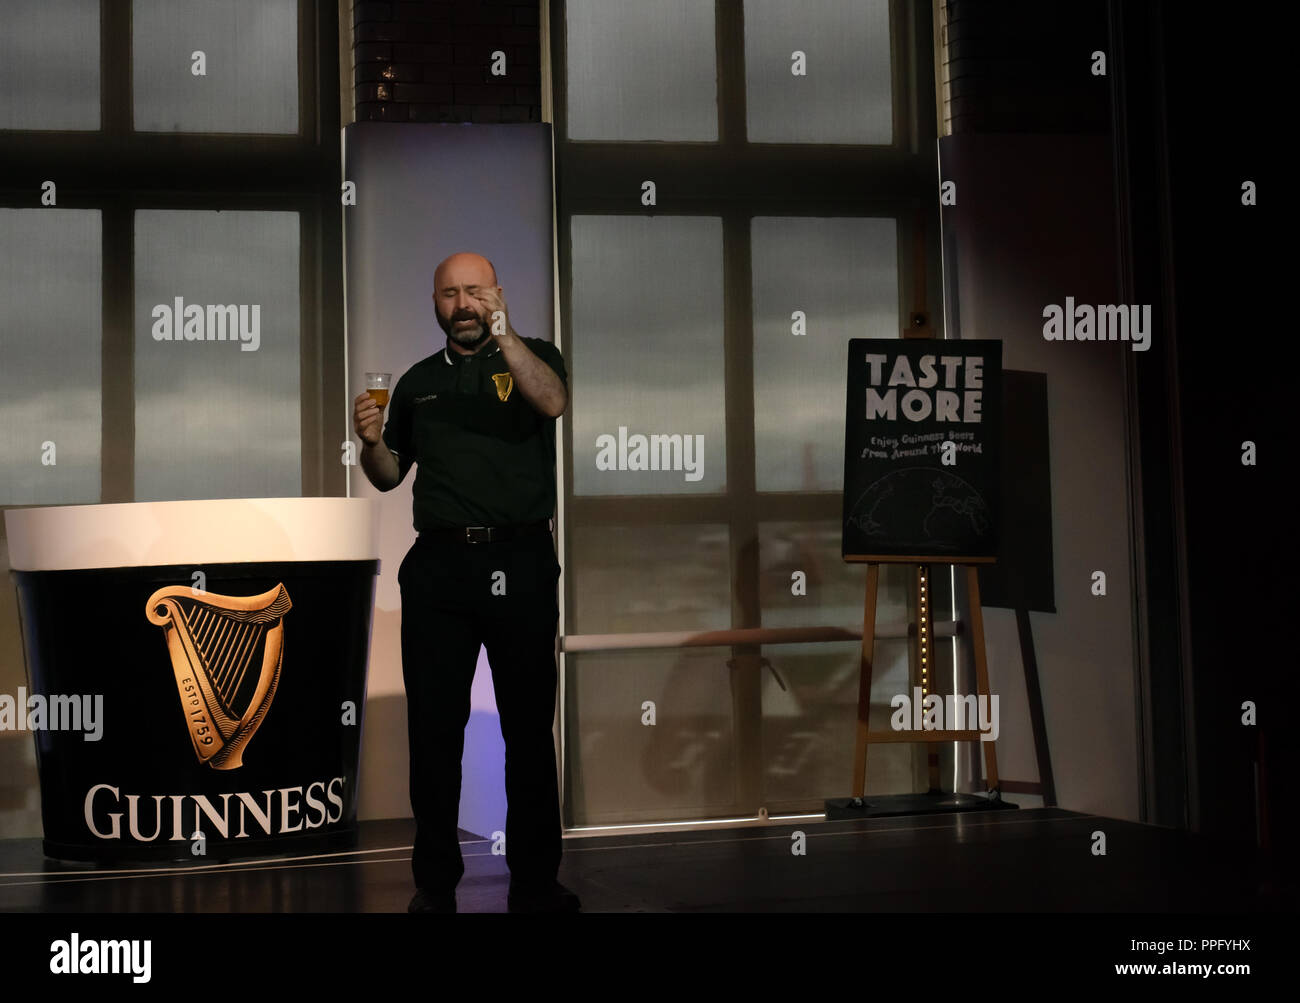 Live show at Guinness Storehouse. Presenter demonstrates on stage the Guinness Experience, Dublin, Ireland - Stock Image